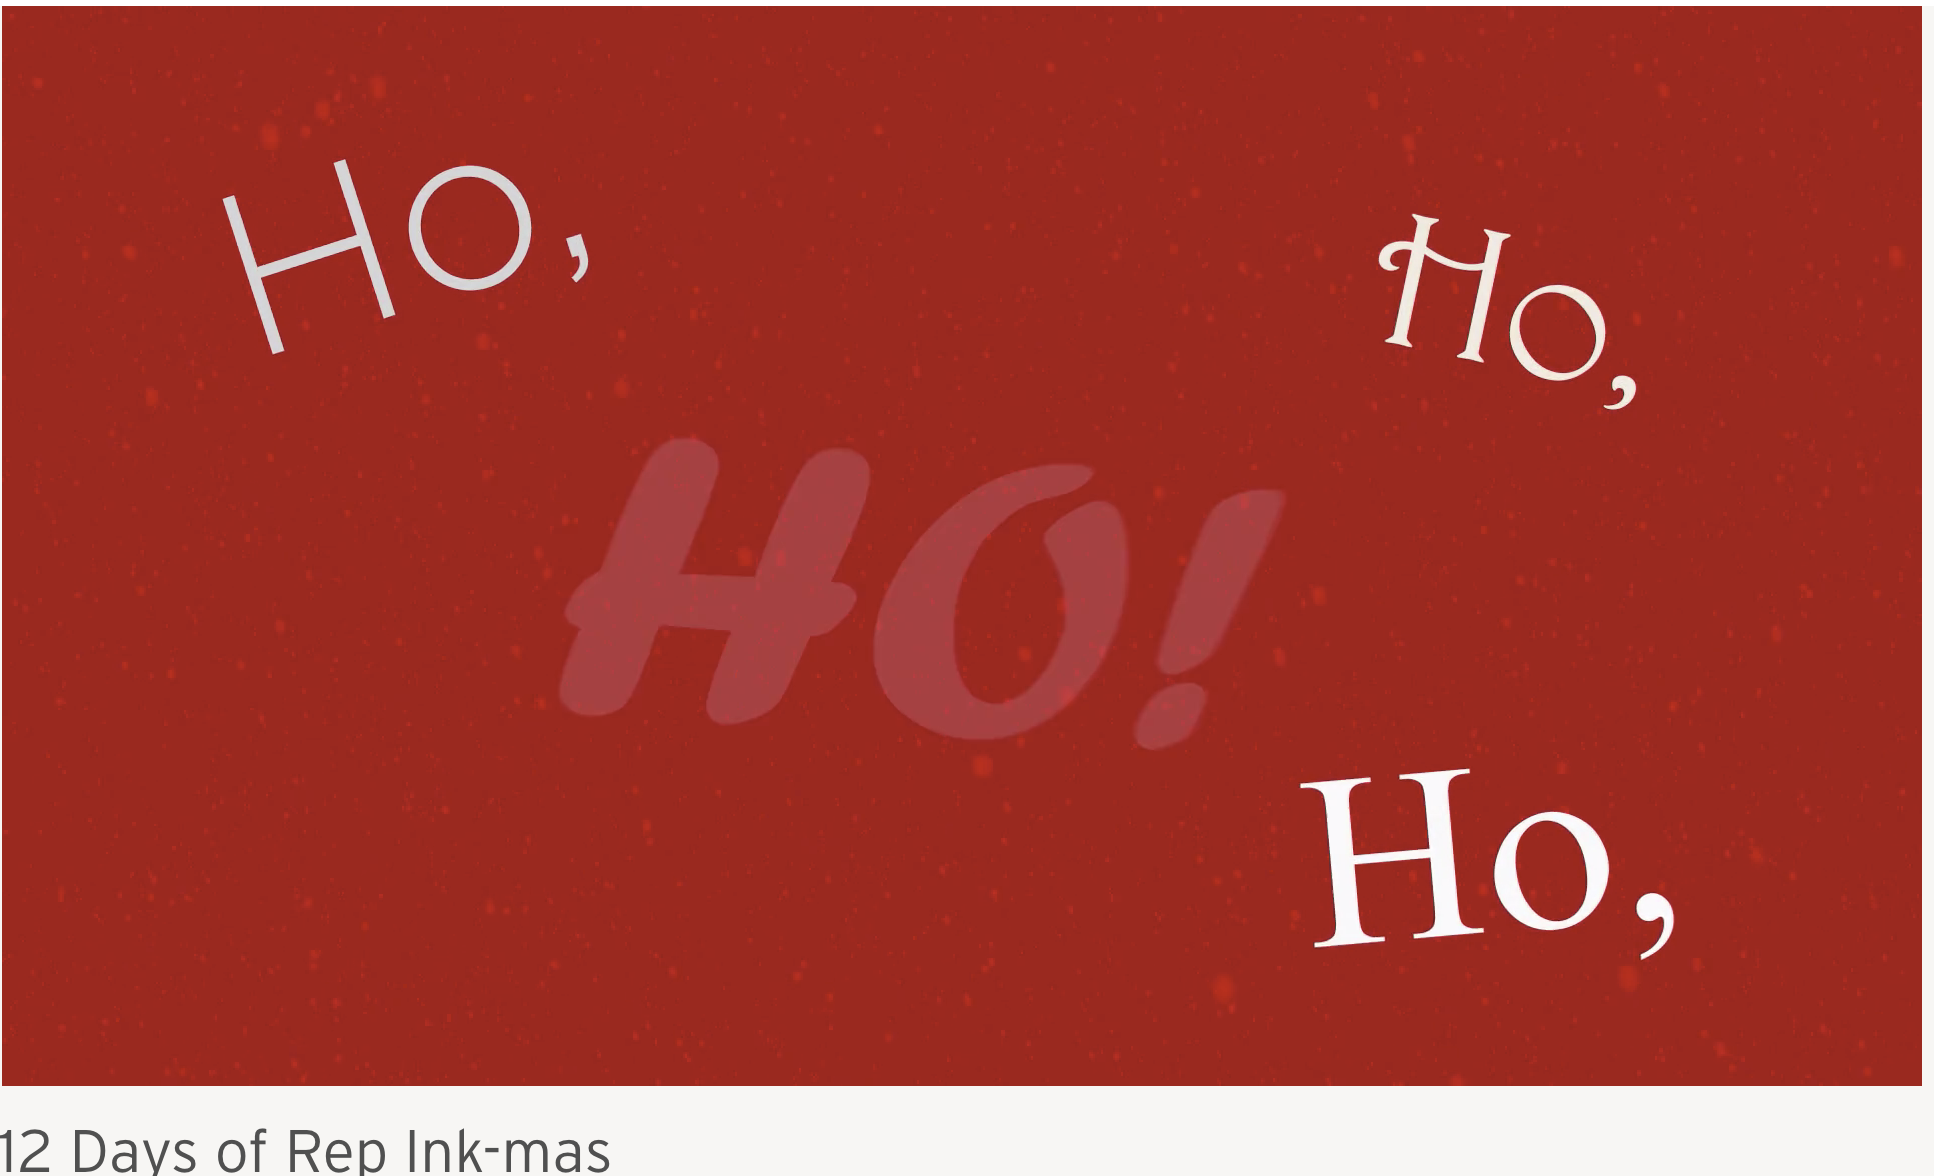 Spread the cheer! How to do holiday marketing the right way for B2B and professional services